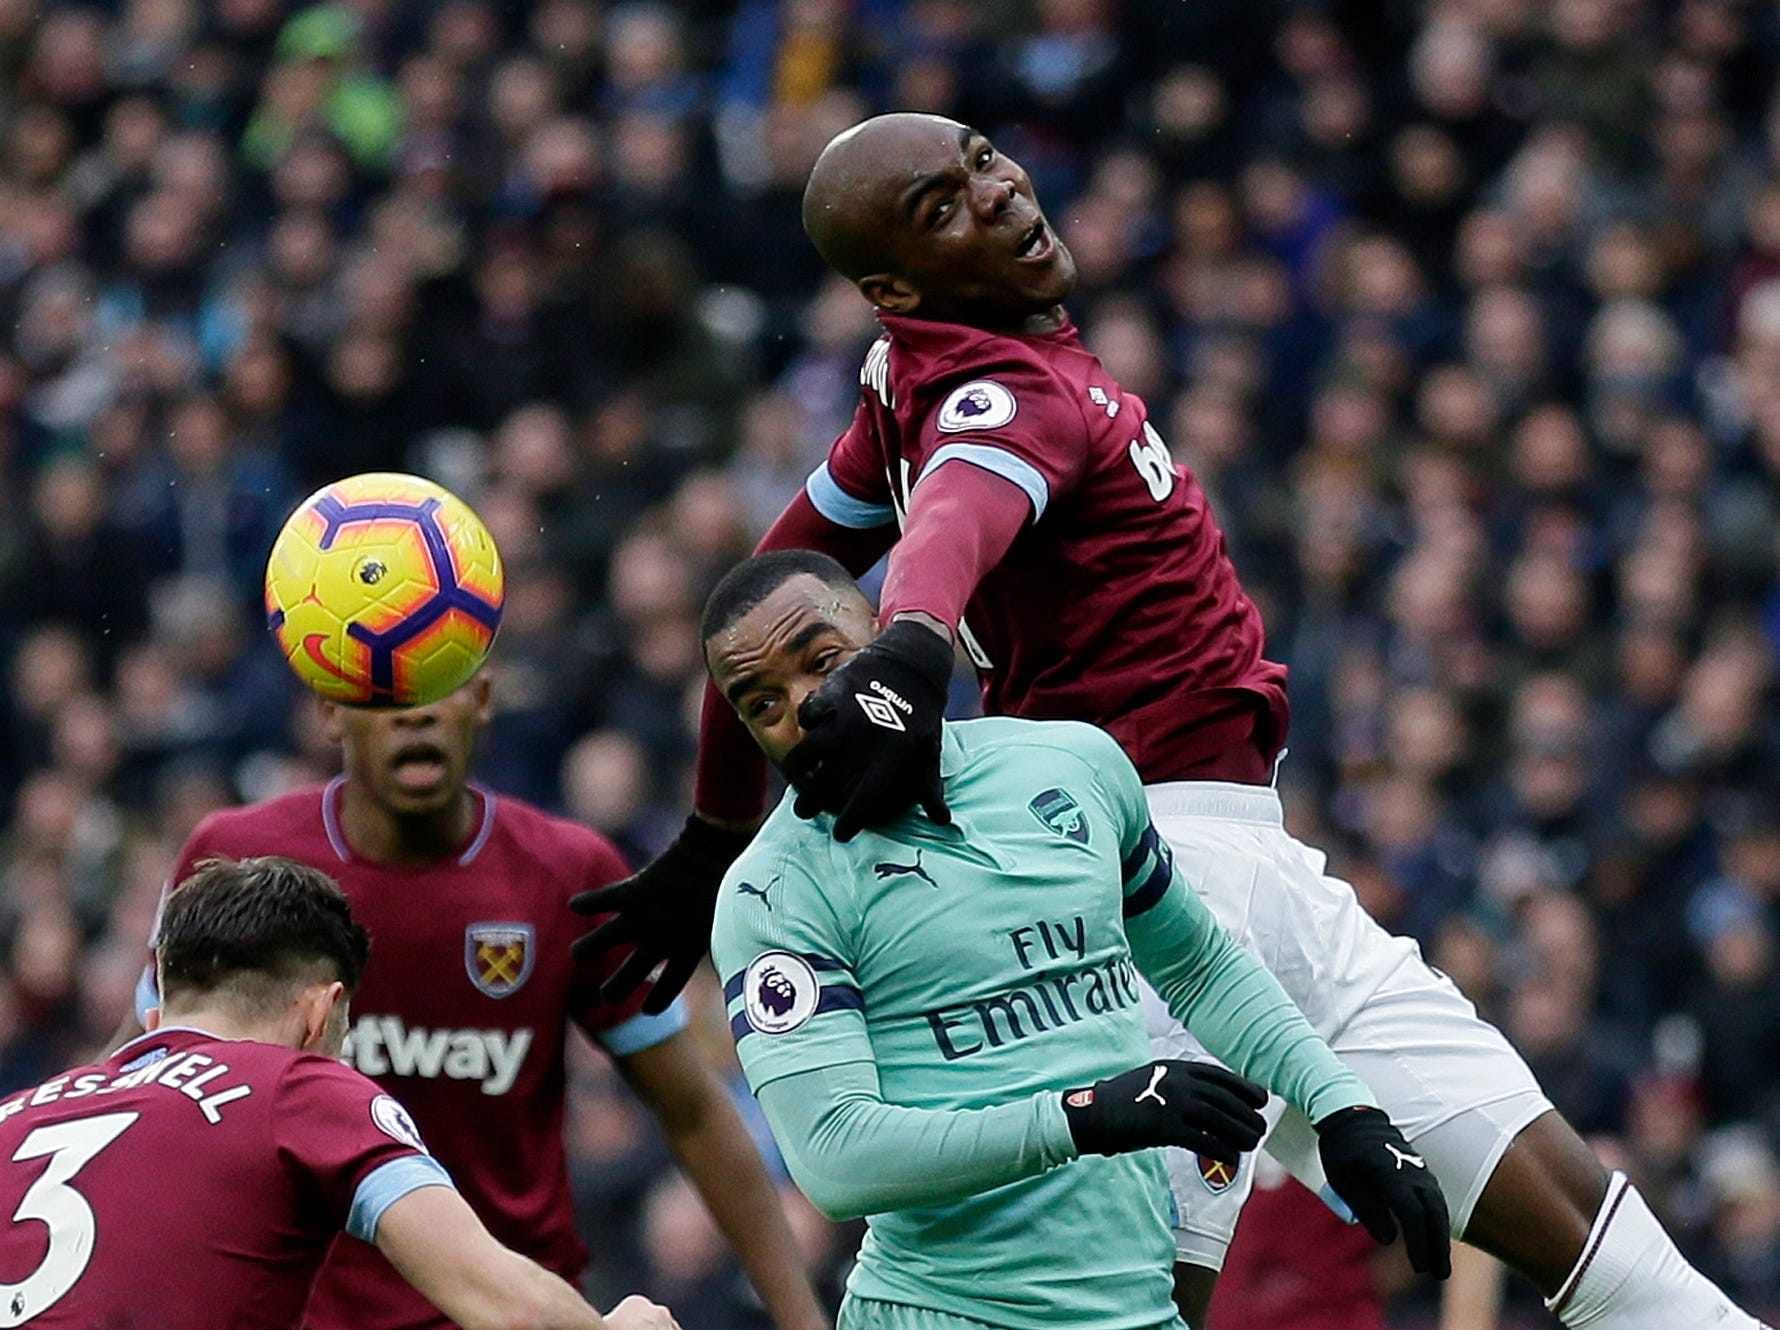 West Ham's Angelo Ogbonna jumps for the ball above Arsenal's Alexandre Lacazette.